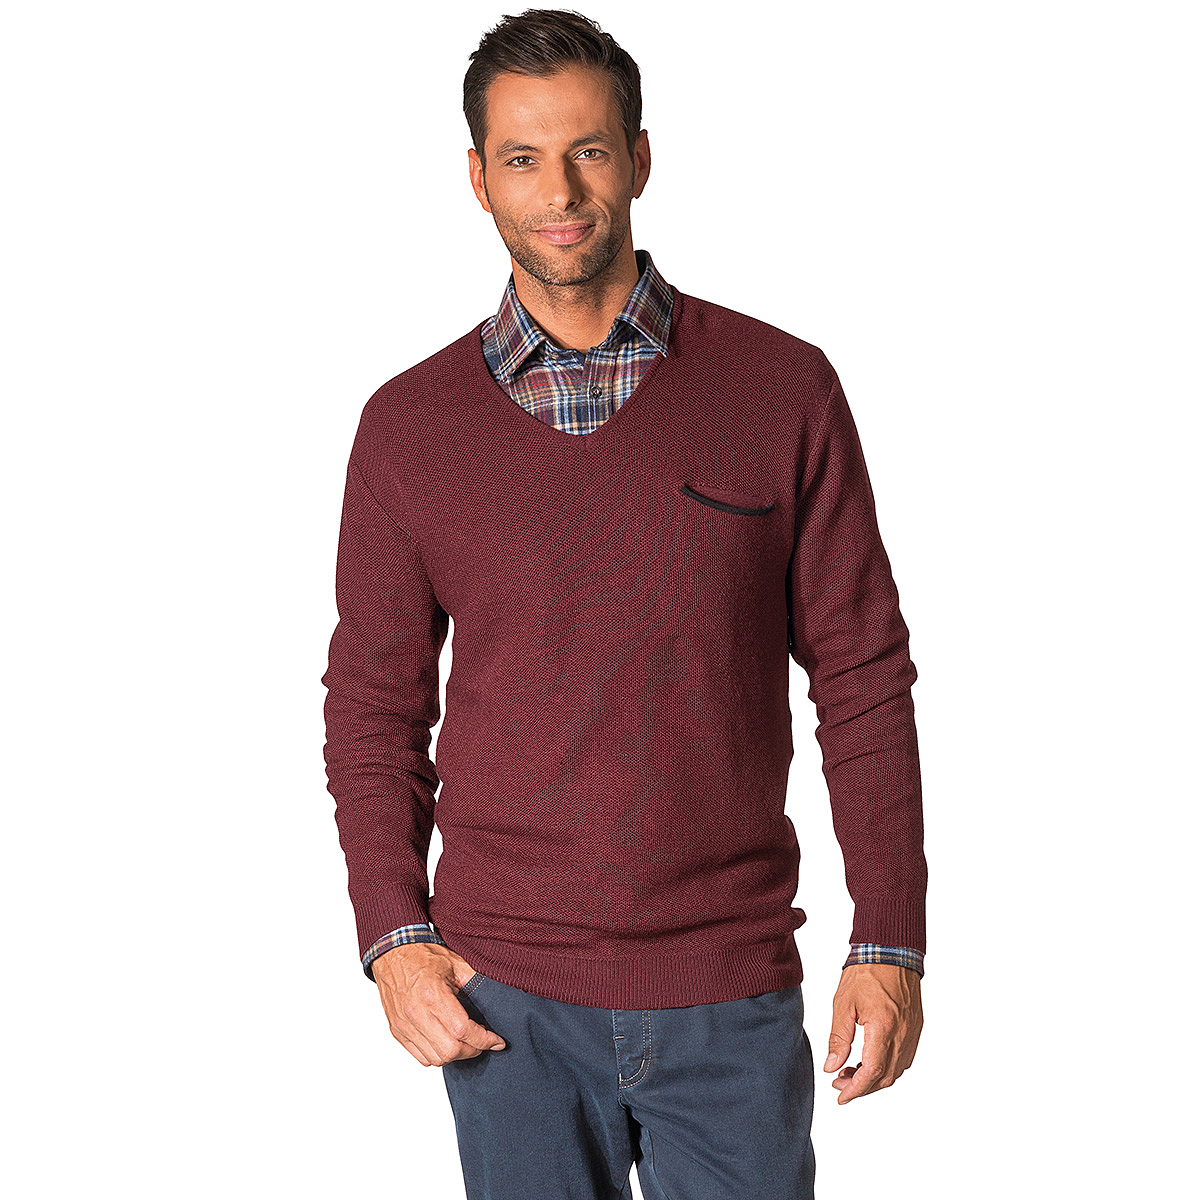 kimmich struktur pullover v ausschnitt farbe burgund gr enspezialist m nnermode. Black Bedroom Furniture Sets. Home Design Ideas